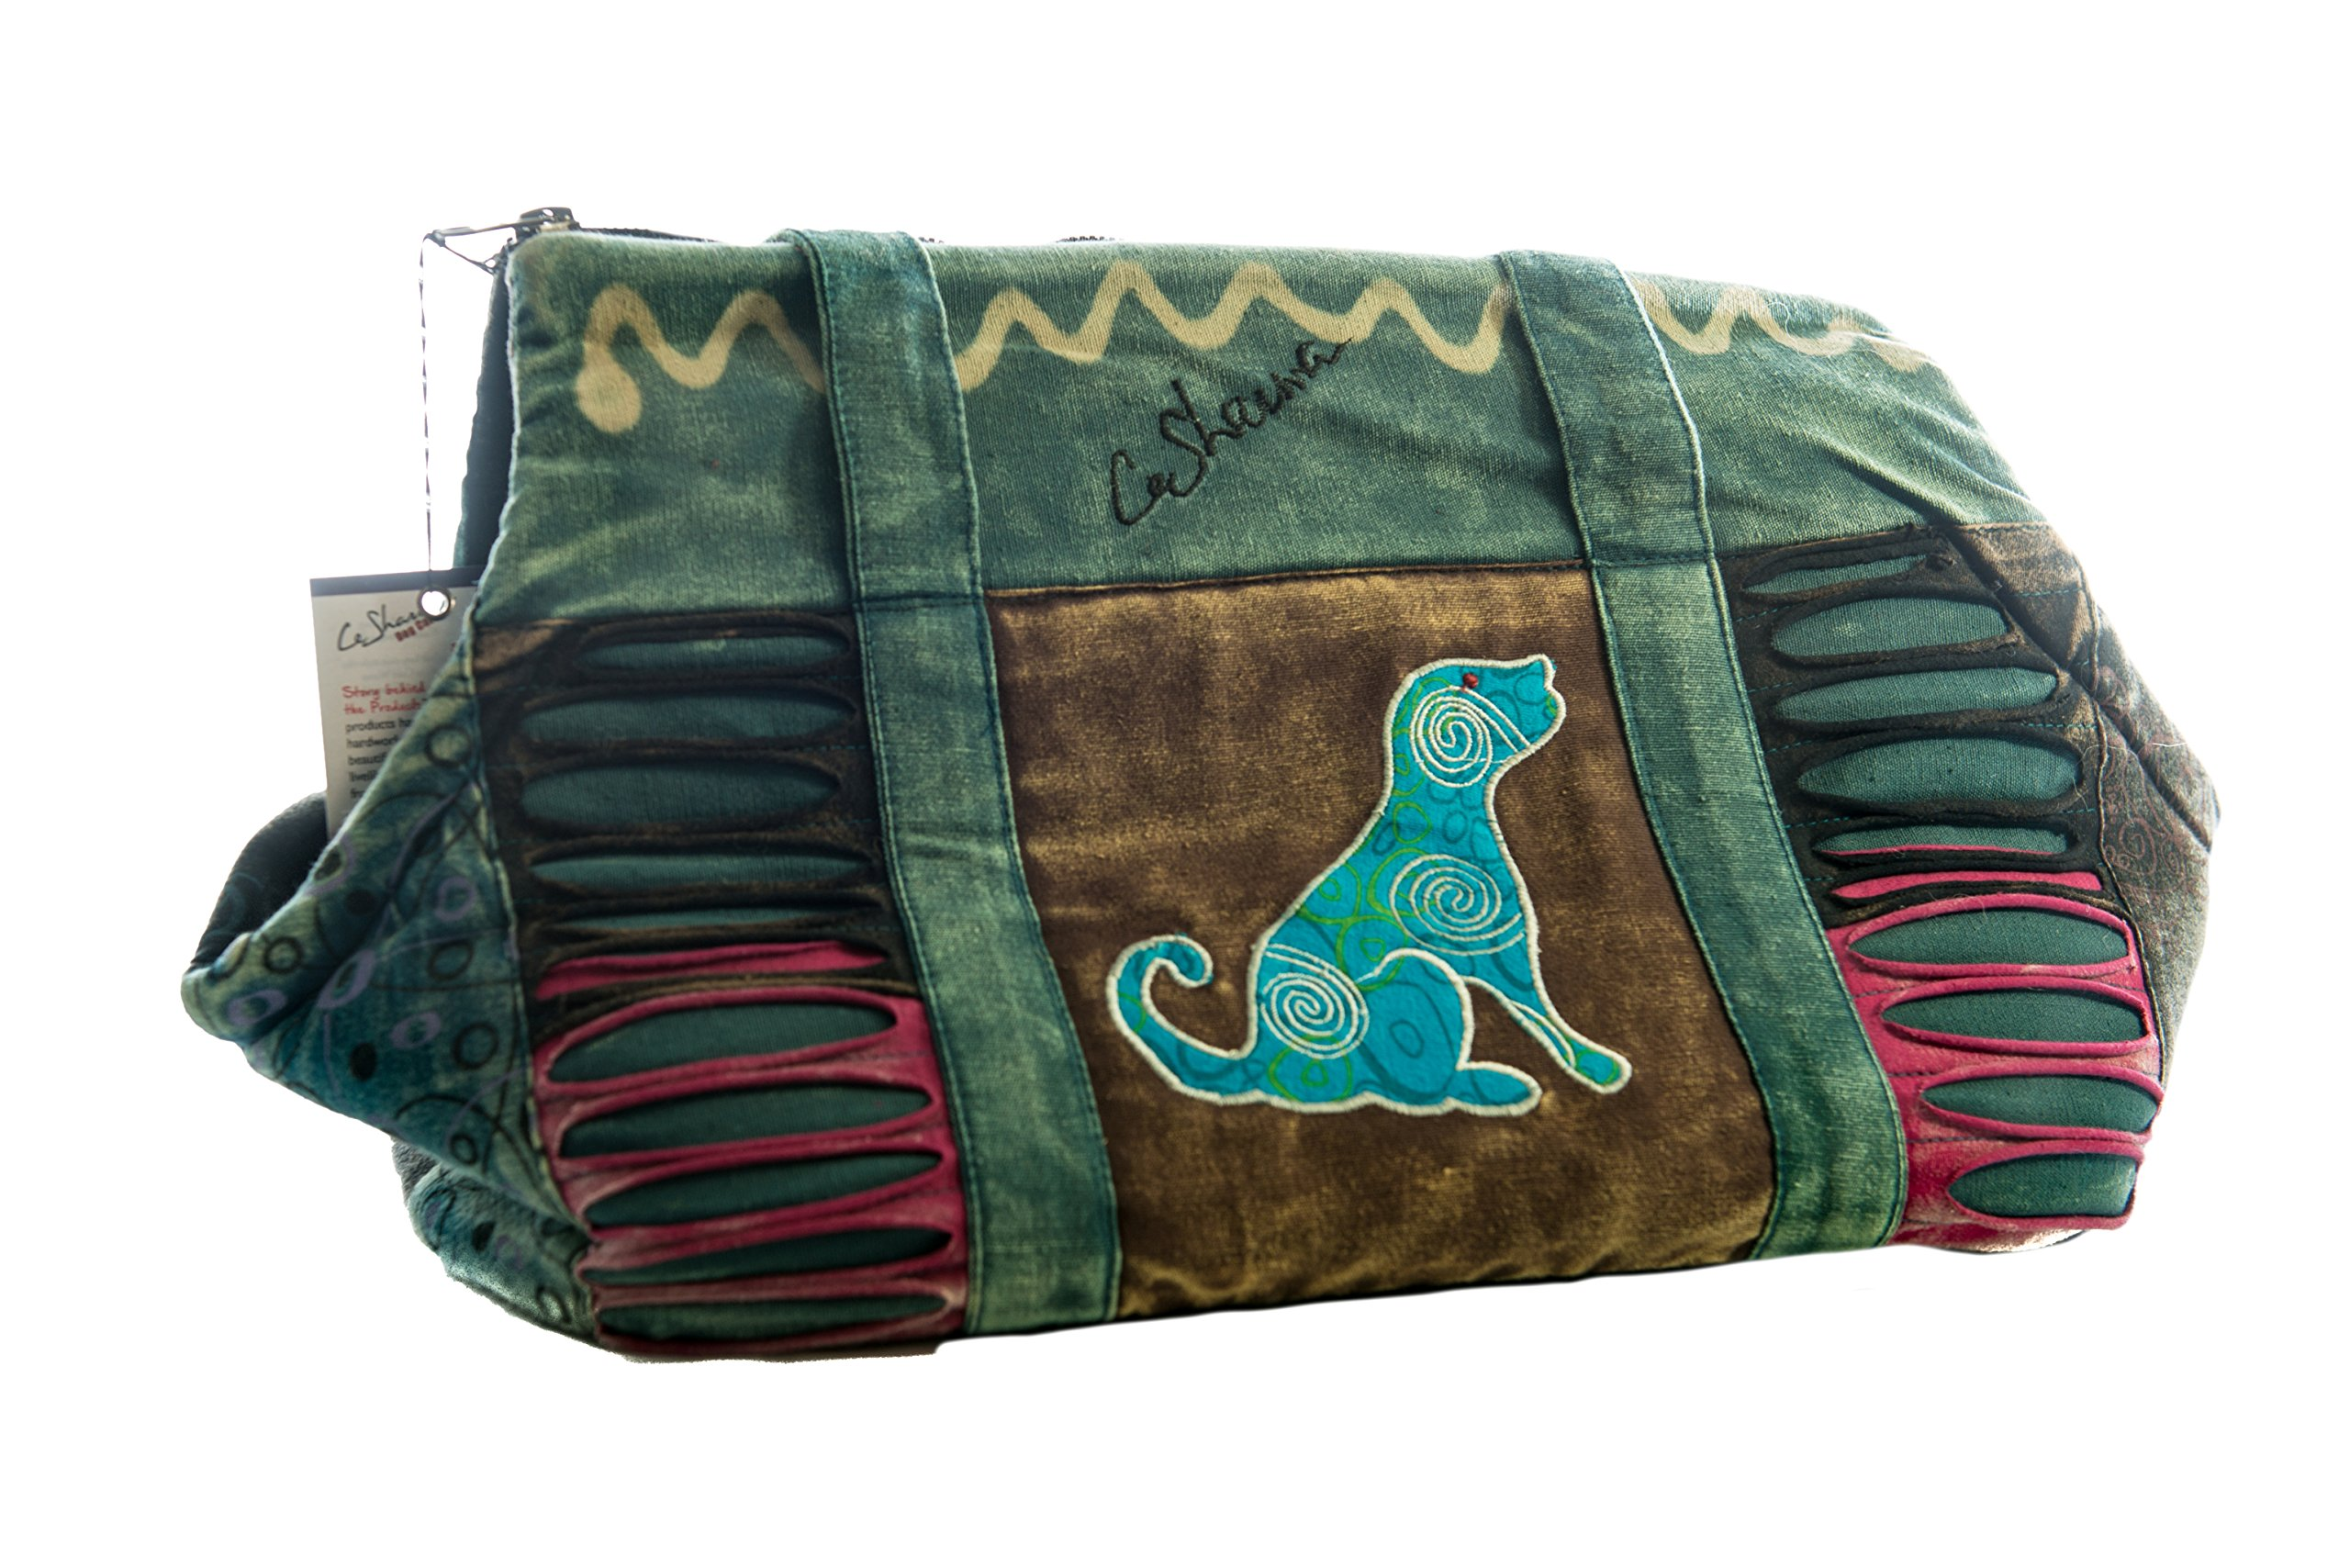 Le Sharma Cotton-Dog Carrier, Handmade with 100% Cotton, Stylish and Practical, Ideal for Small Dogs (LSFCC-06)